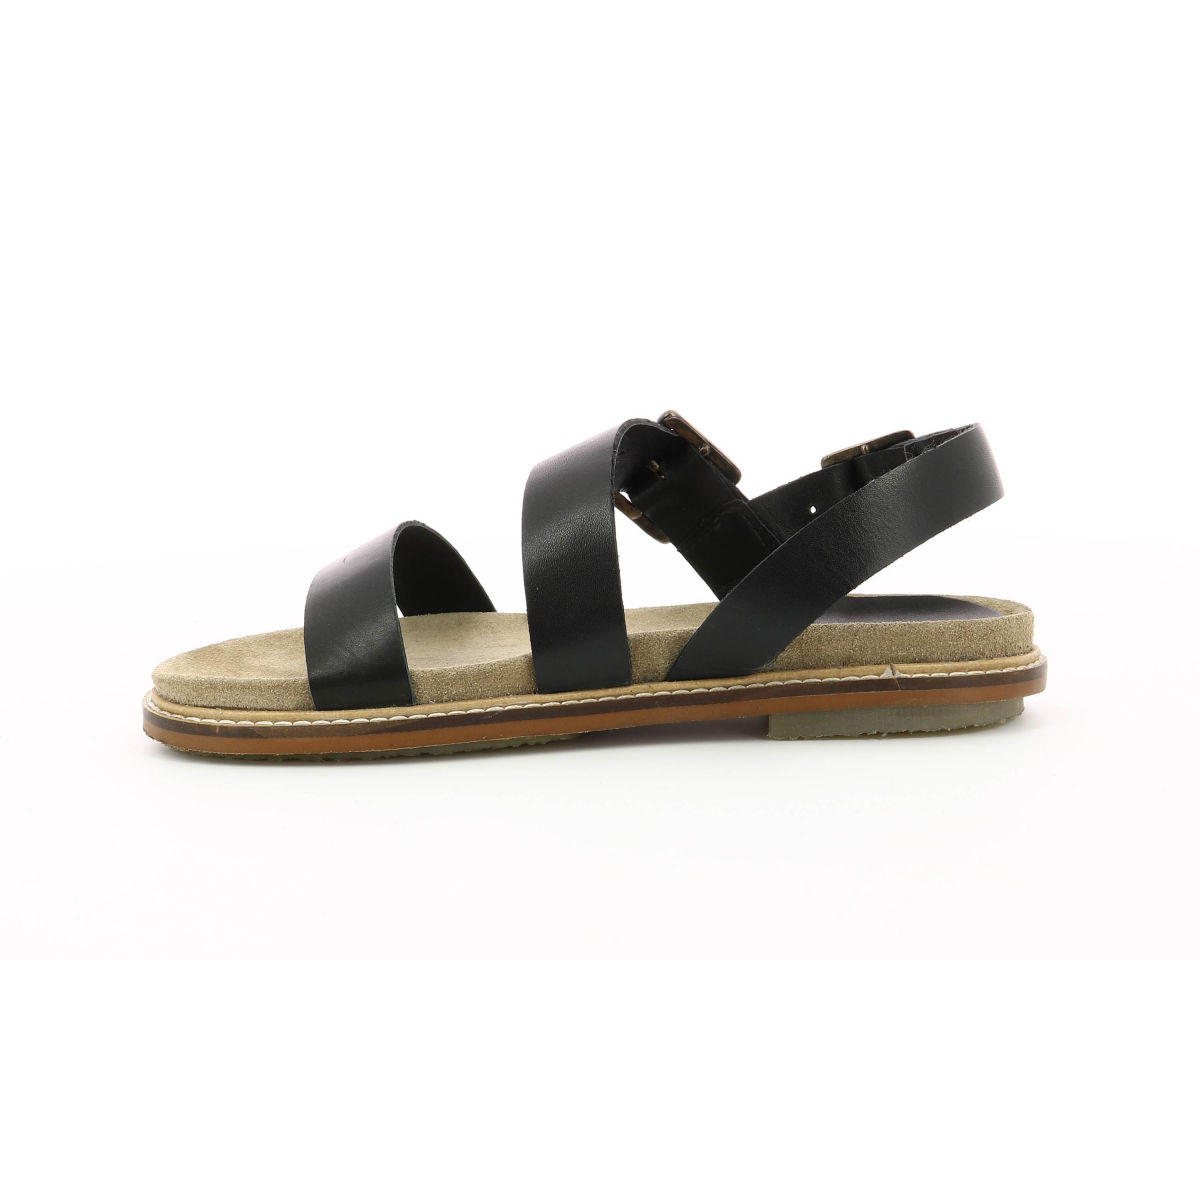 Madisson Chaussures Chaussures Kickers Noir Femme Madisson Chaussures Noir Kickers Femme Tu1J5lFKc3